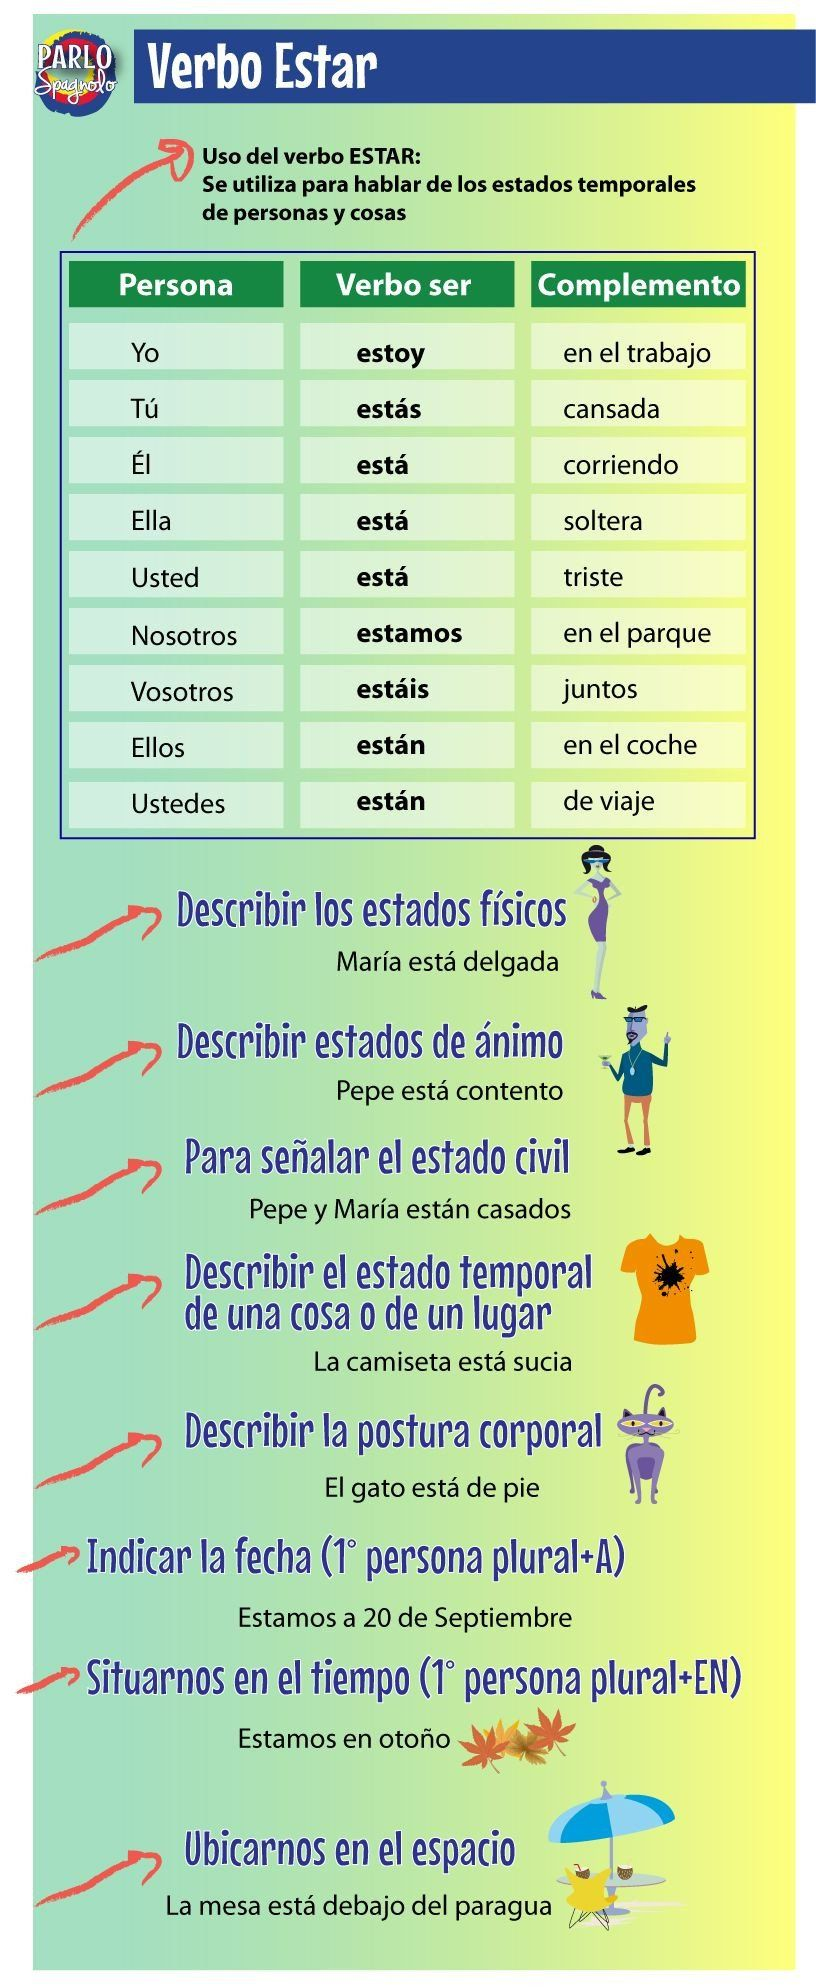 El Verbo Ser Worksheet Answers Verbo Estar En Presente Indicativo Y Sus Usos Learning Spanish Spanish Teaching Resources Spanish Language Learning Teaching